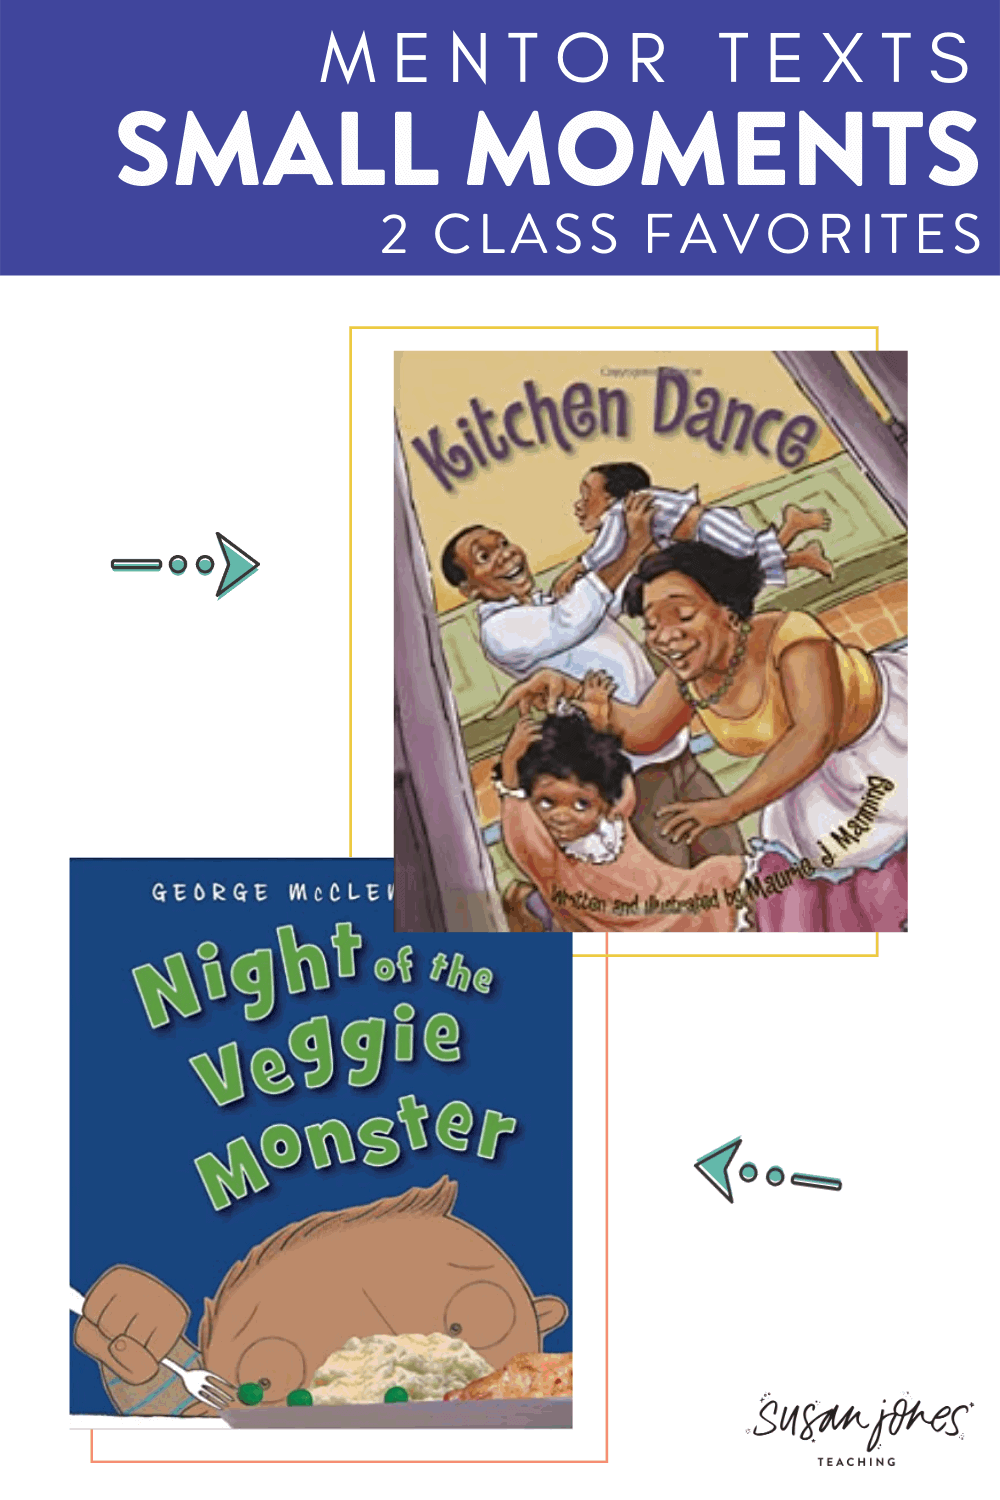 Head on over to the blog to read about 2 of my favorite mentor texts for small moments writing in kindergarten or first grade! Both of these books are great to read more than once throughout your personal narrative writing unit!